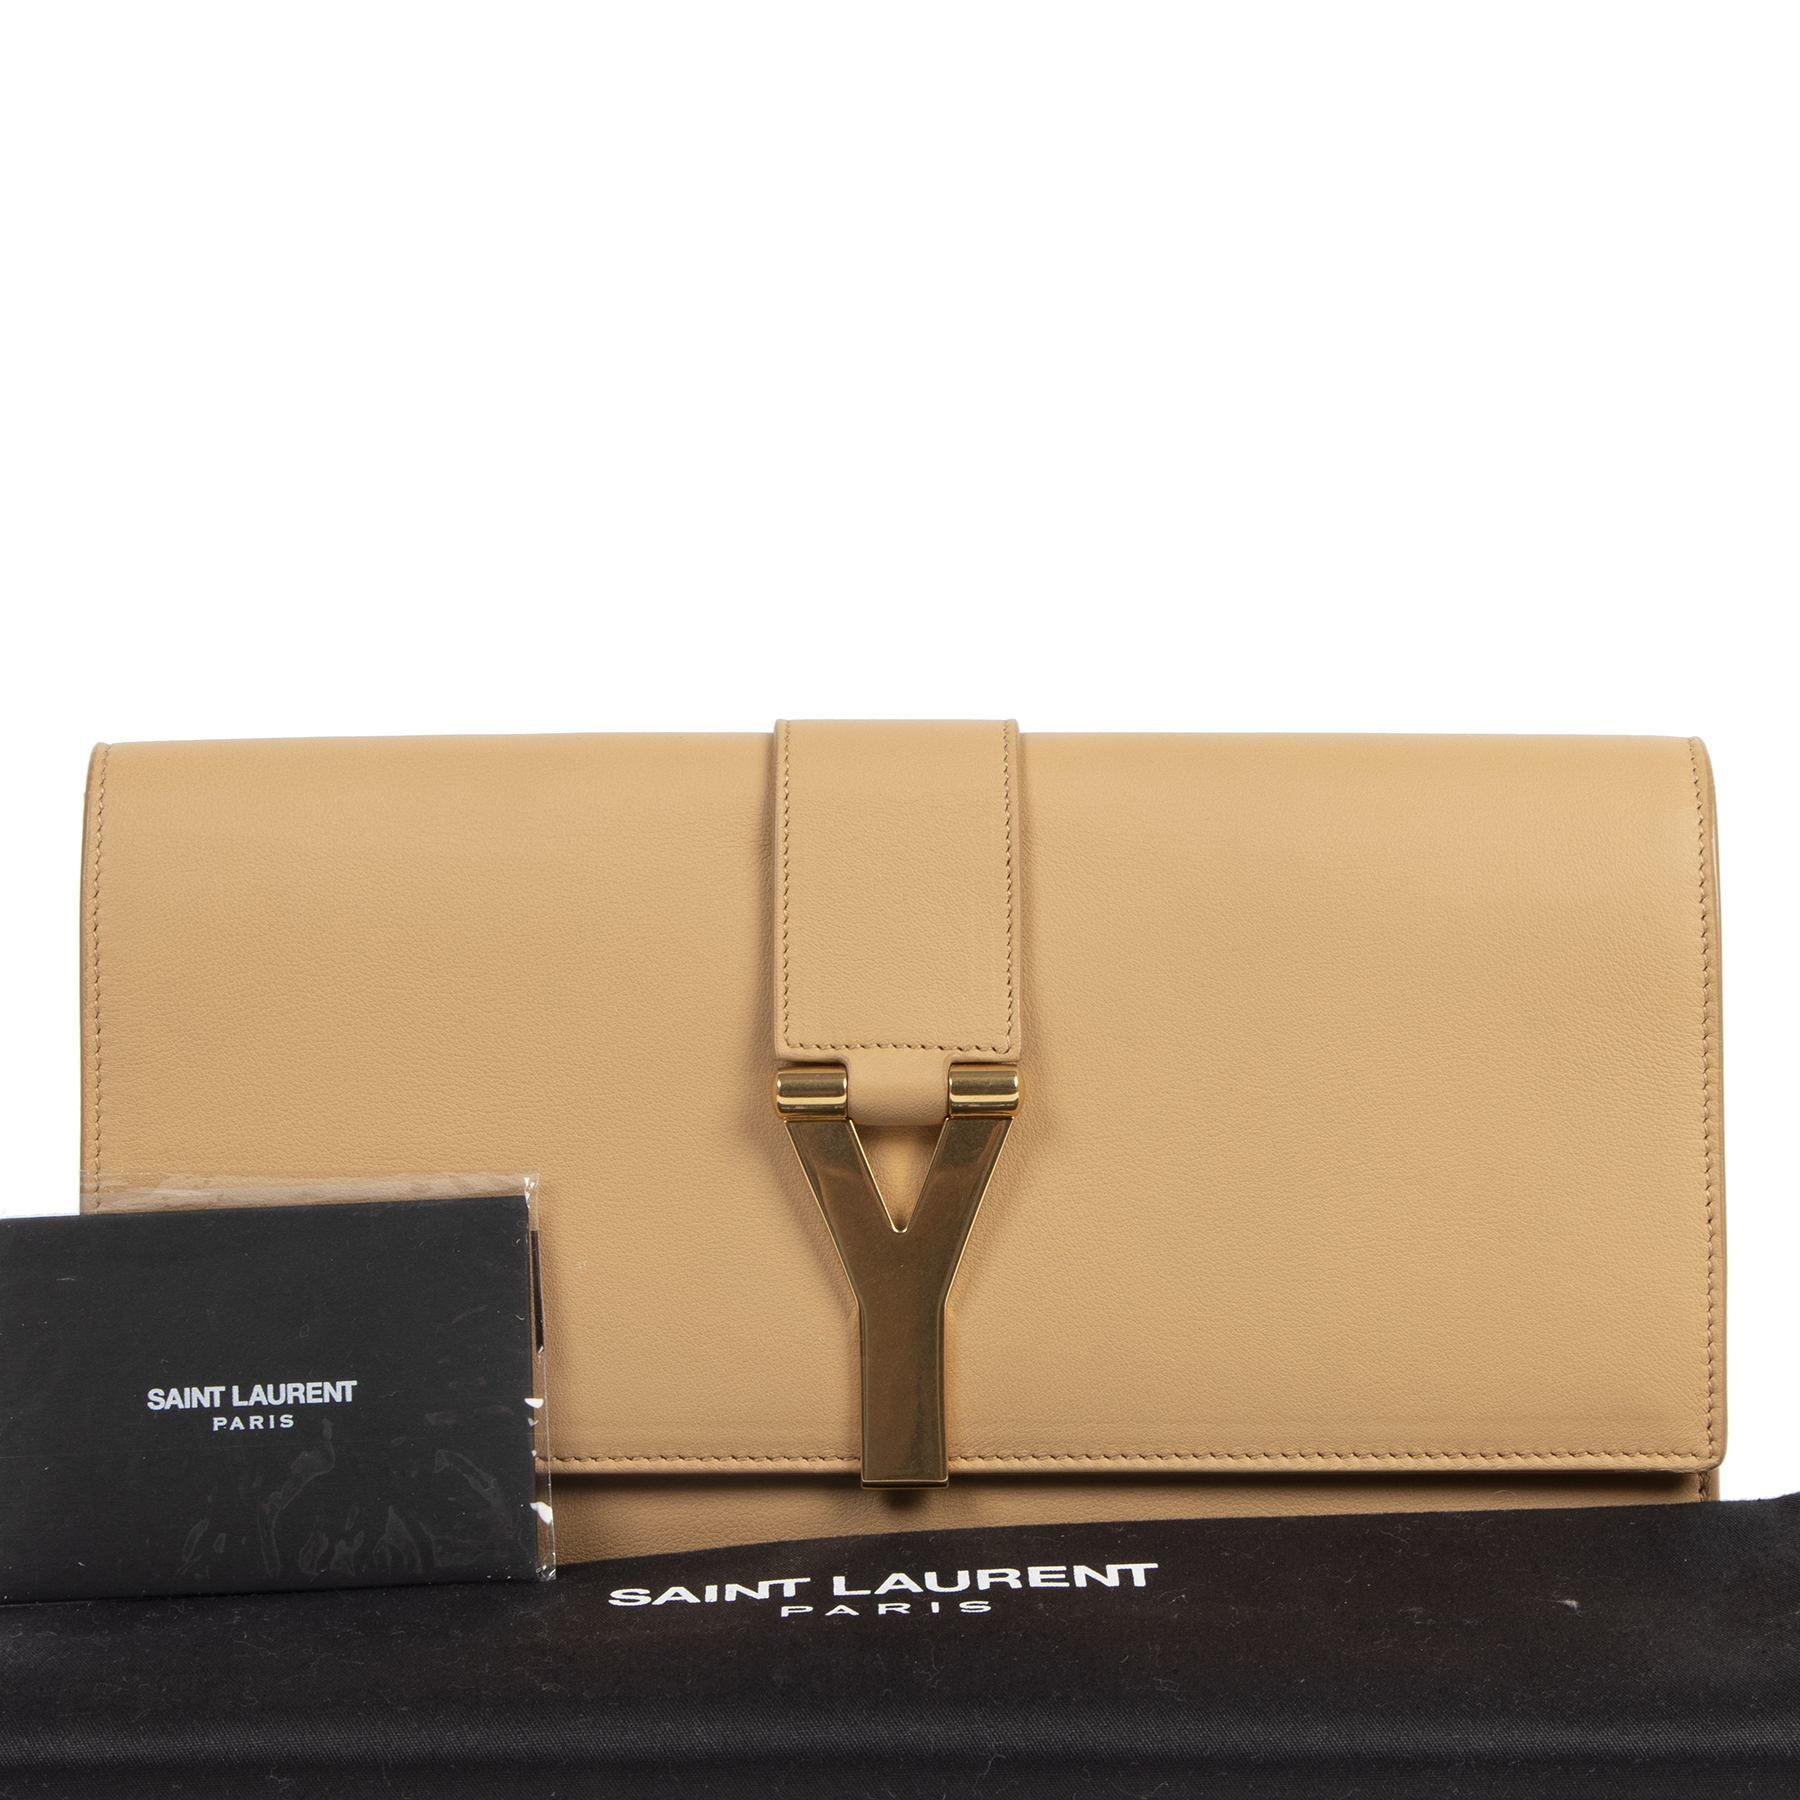 Authentic secondhand Saint Laurent Camel Leather Y Clutch designer bags fashion luxury vintage webshop safe secure online shopping